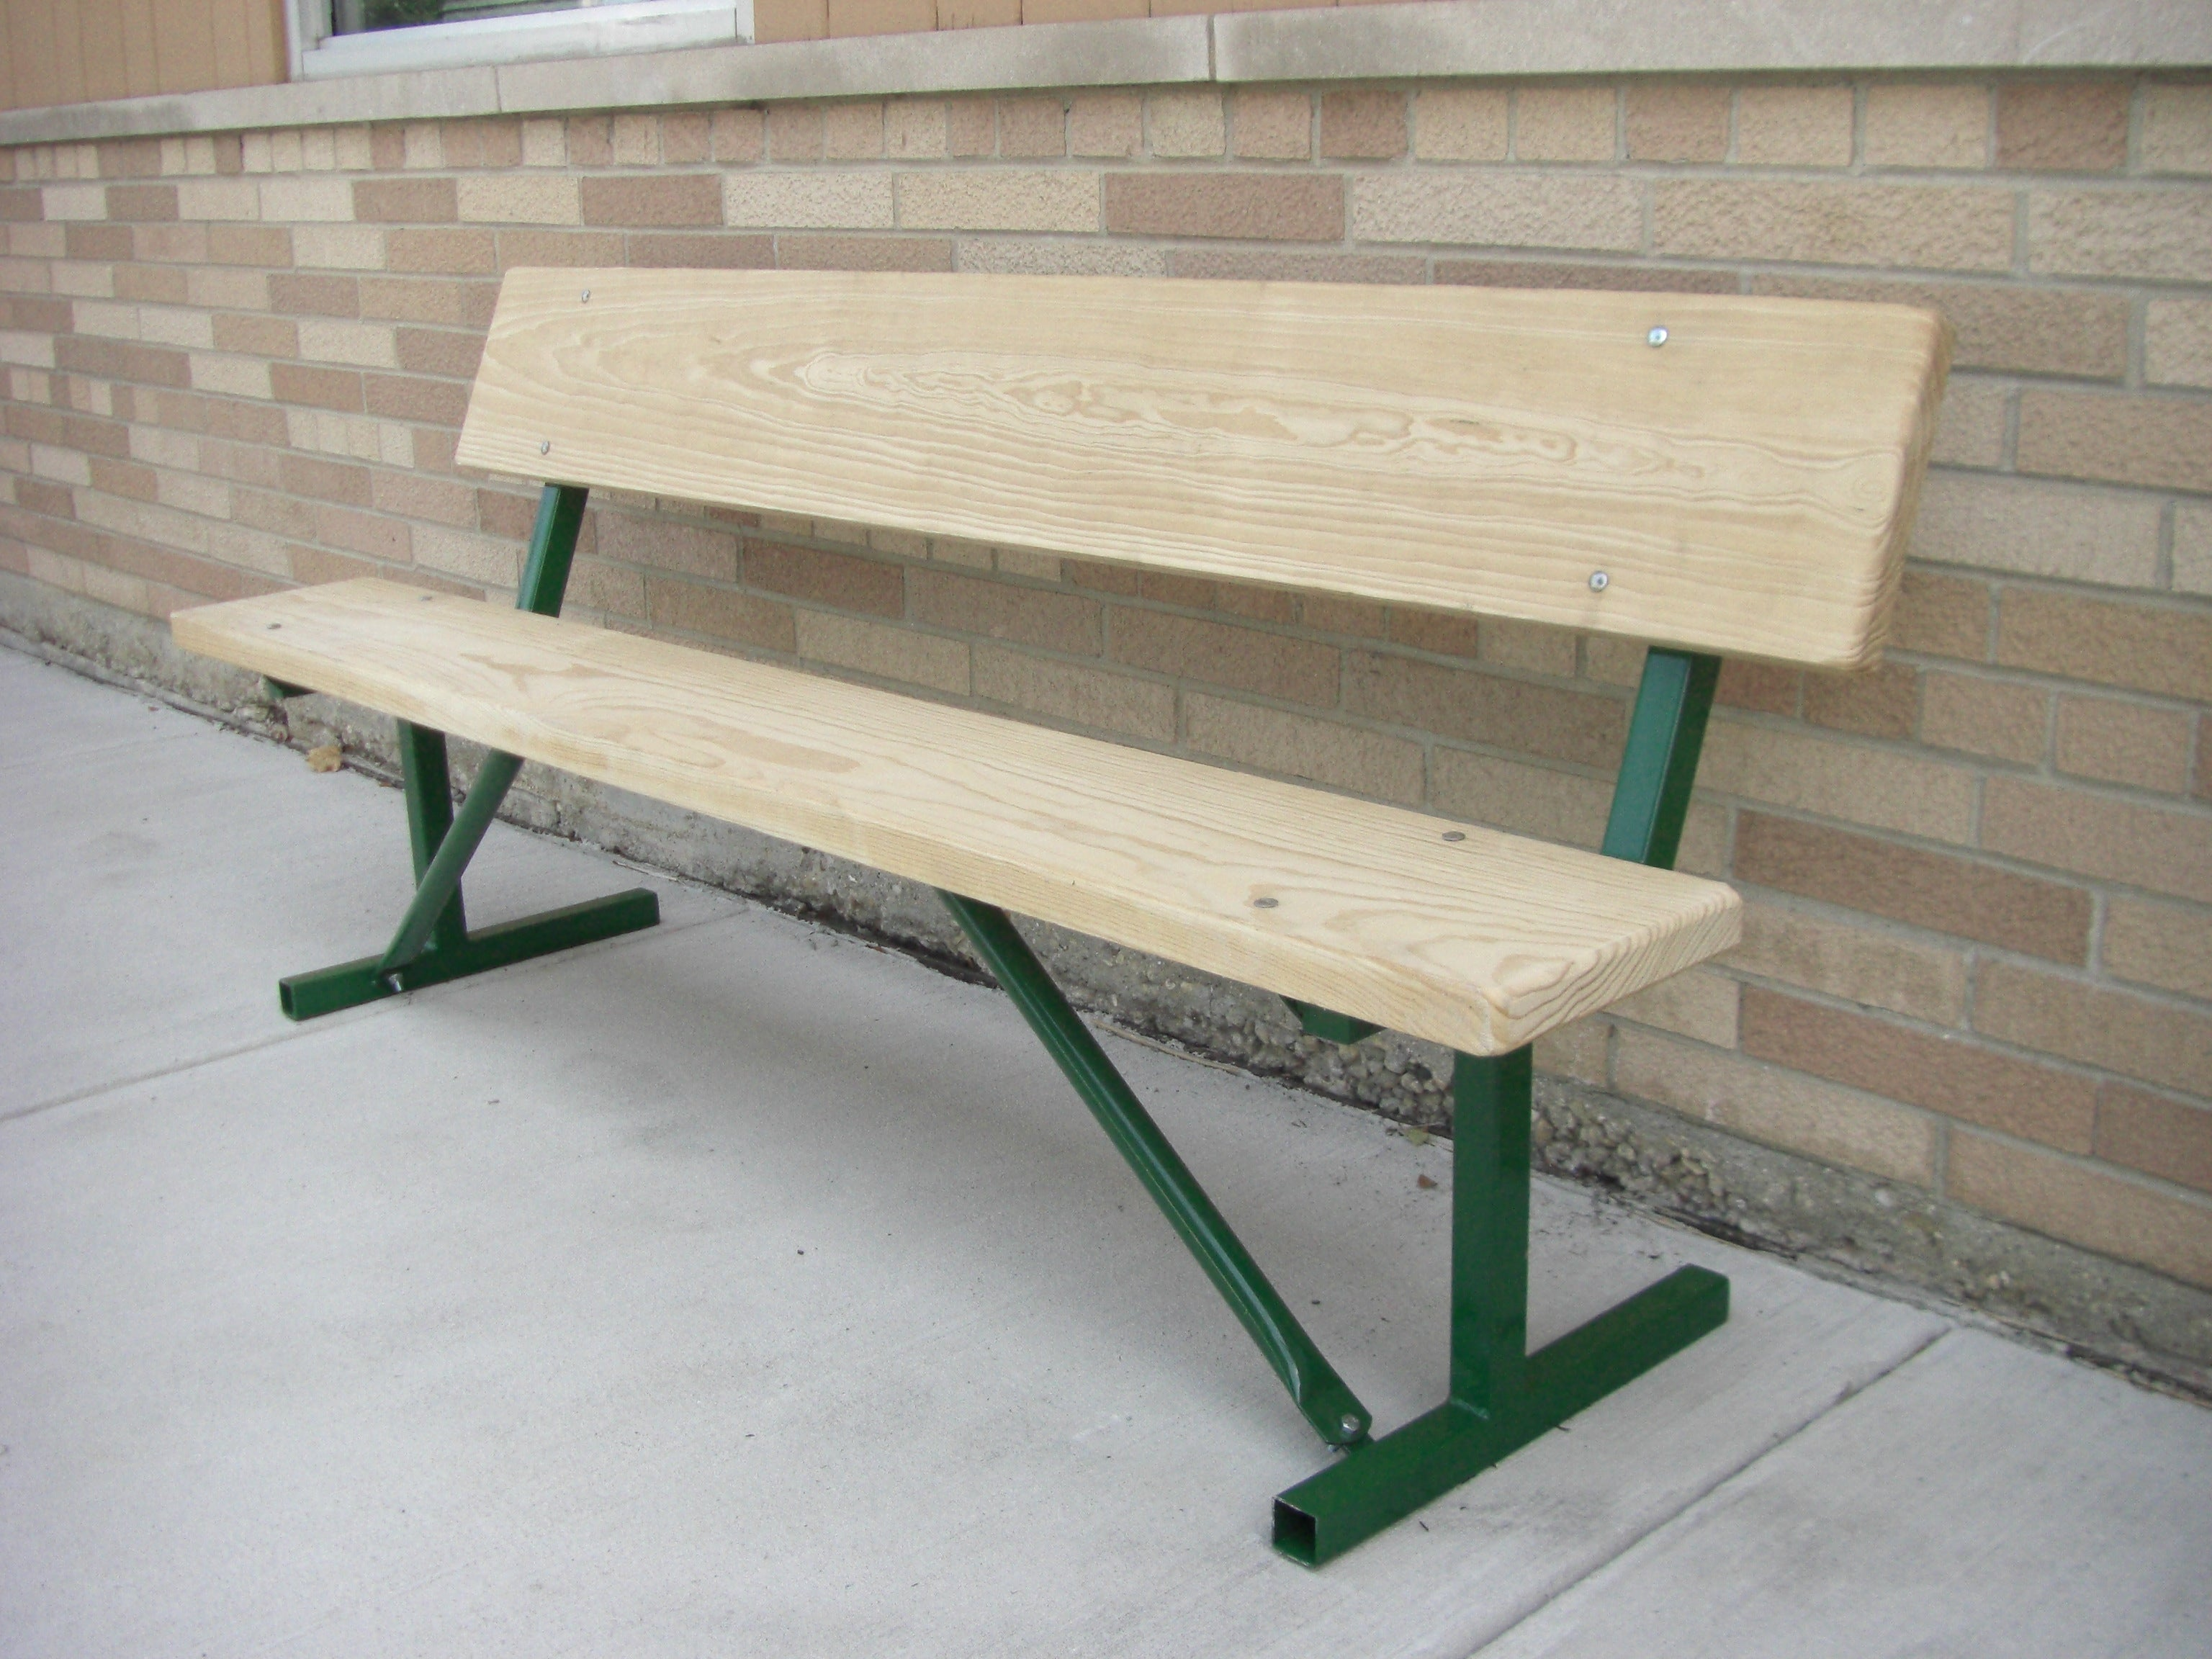 Stationary Standard Park Bench - LUMBER